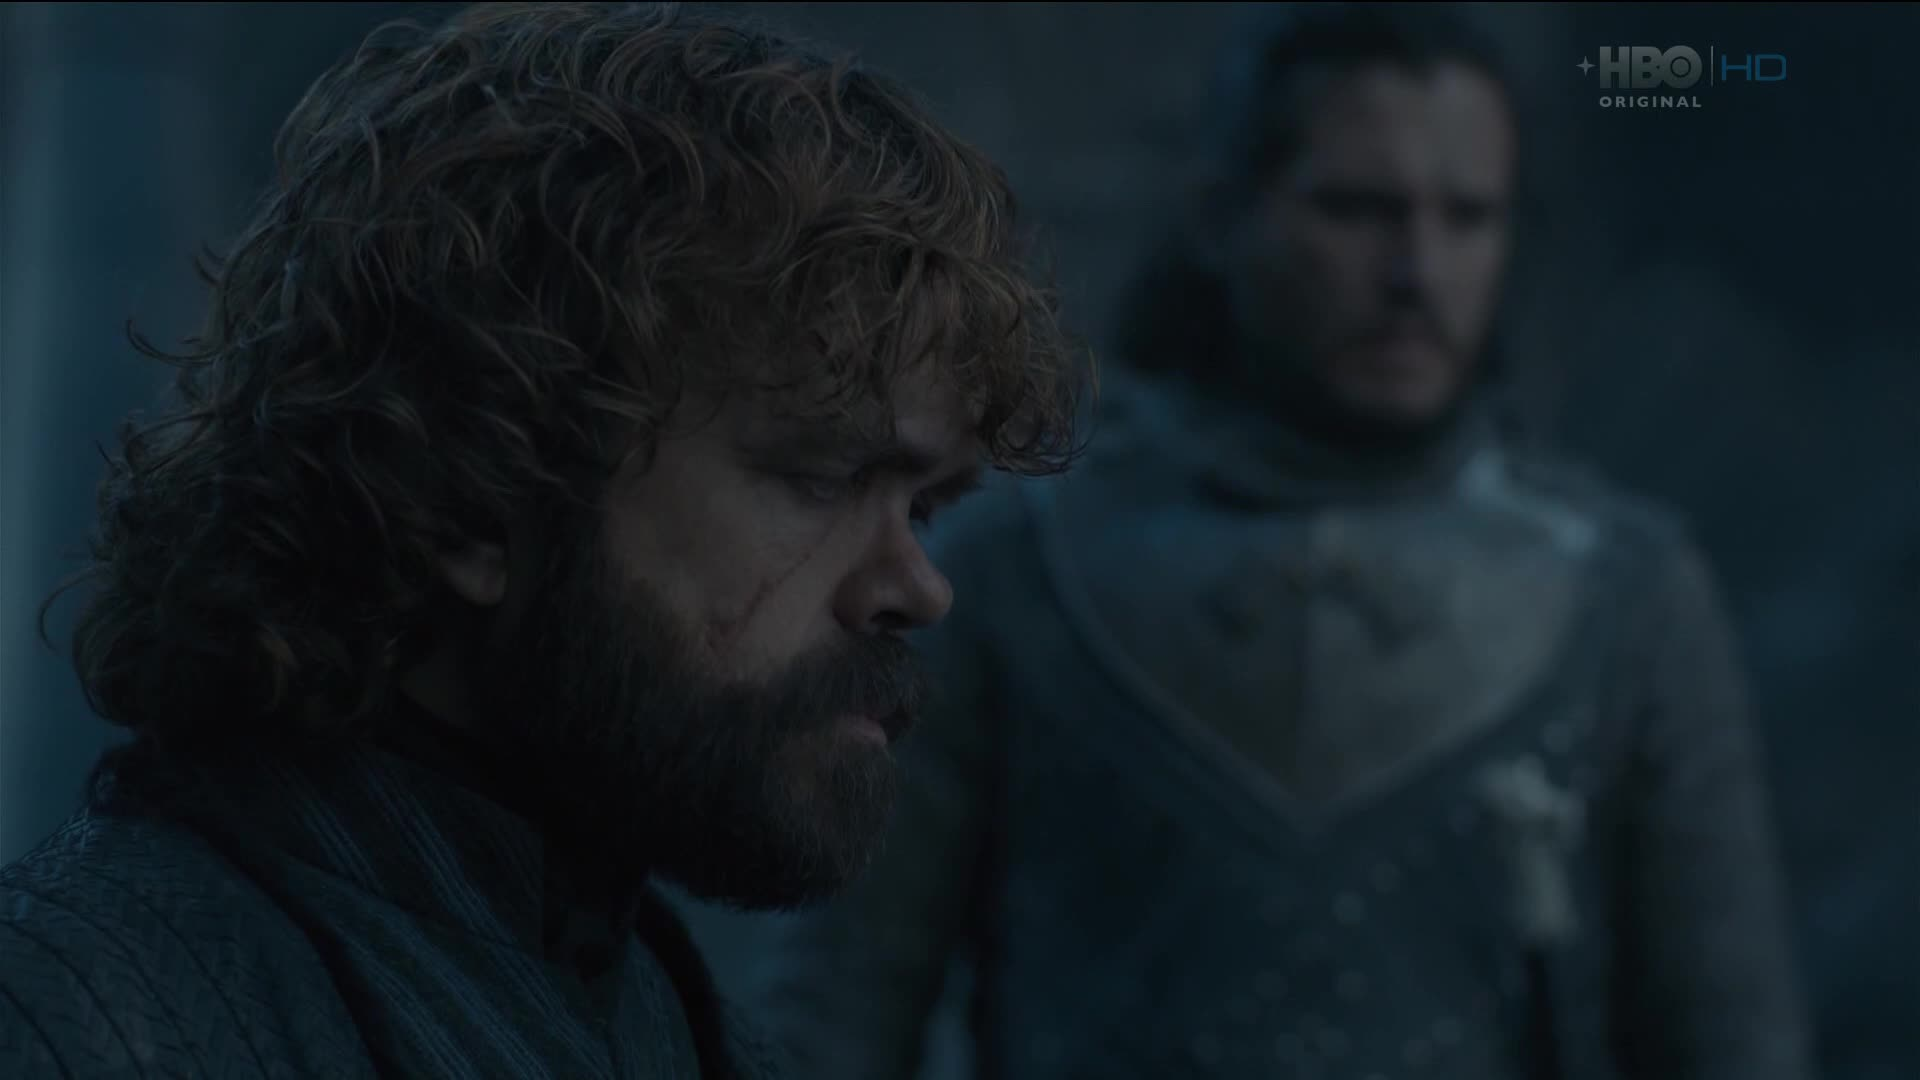 Hra o truny   Game of Thrones S08E06 Cz titulky